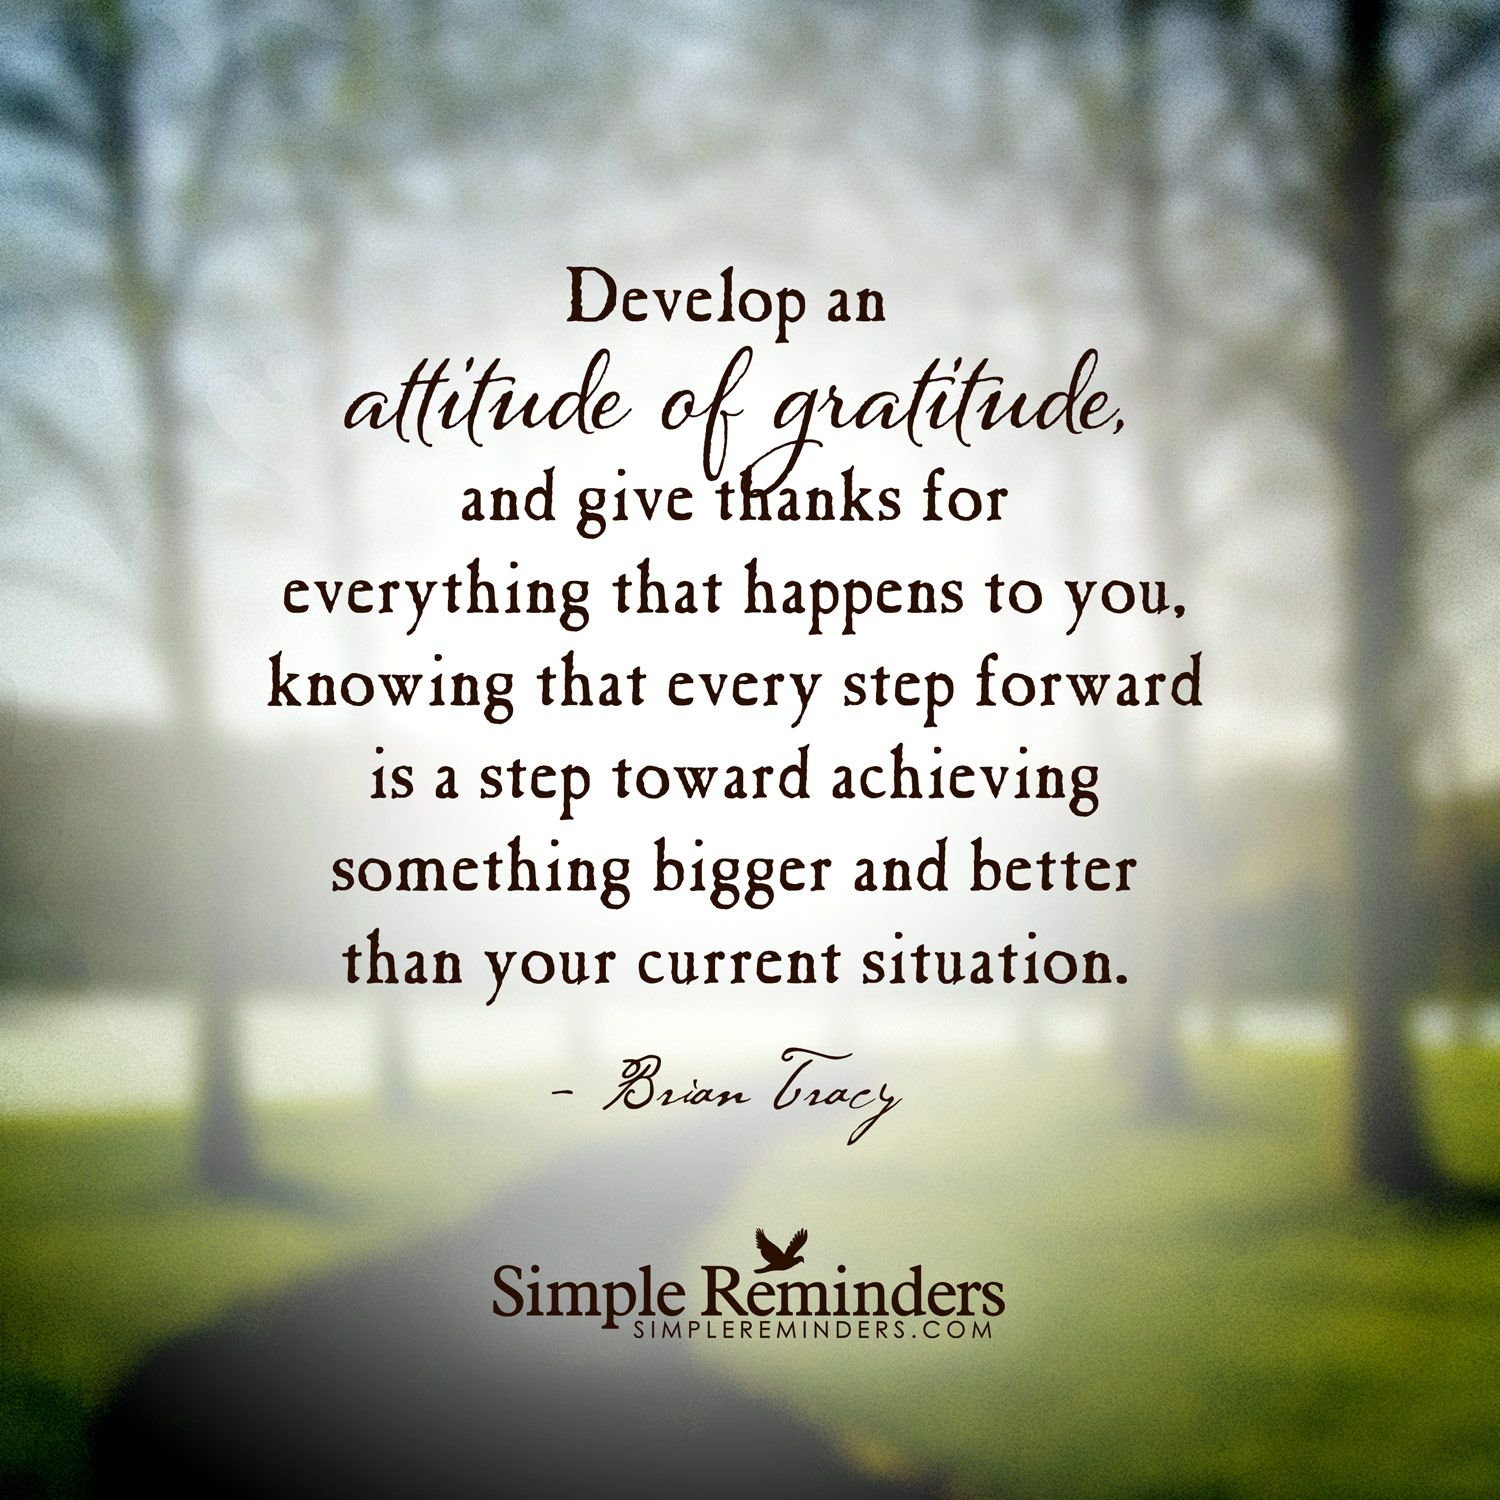 Develop an attitude of gratitude, and give thanks for